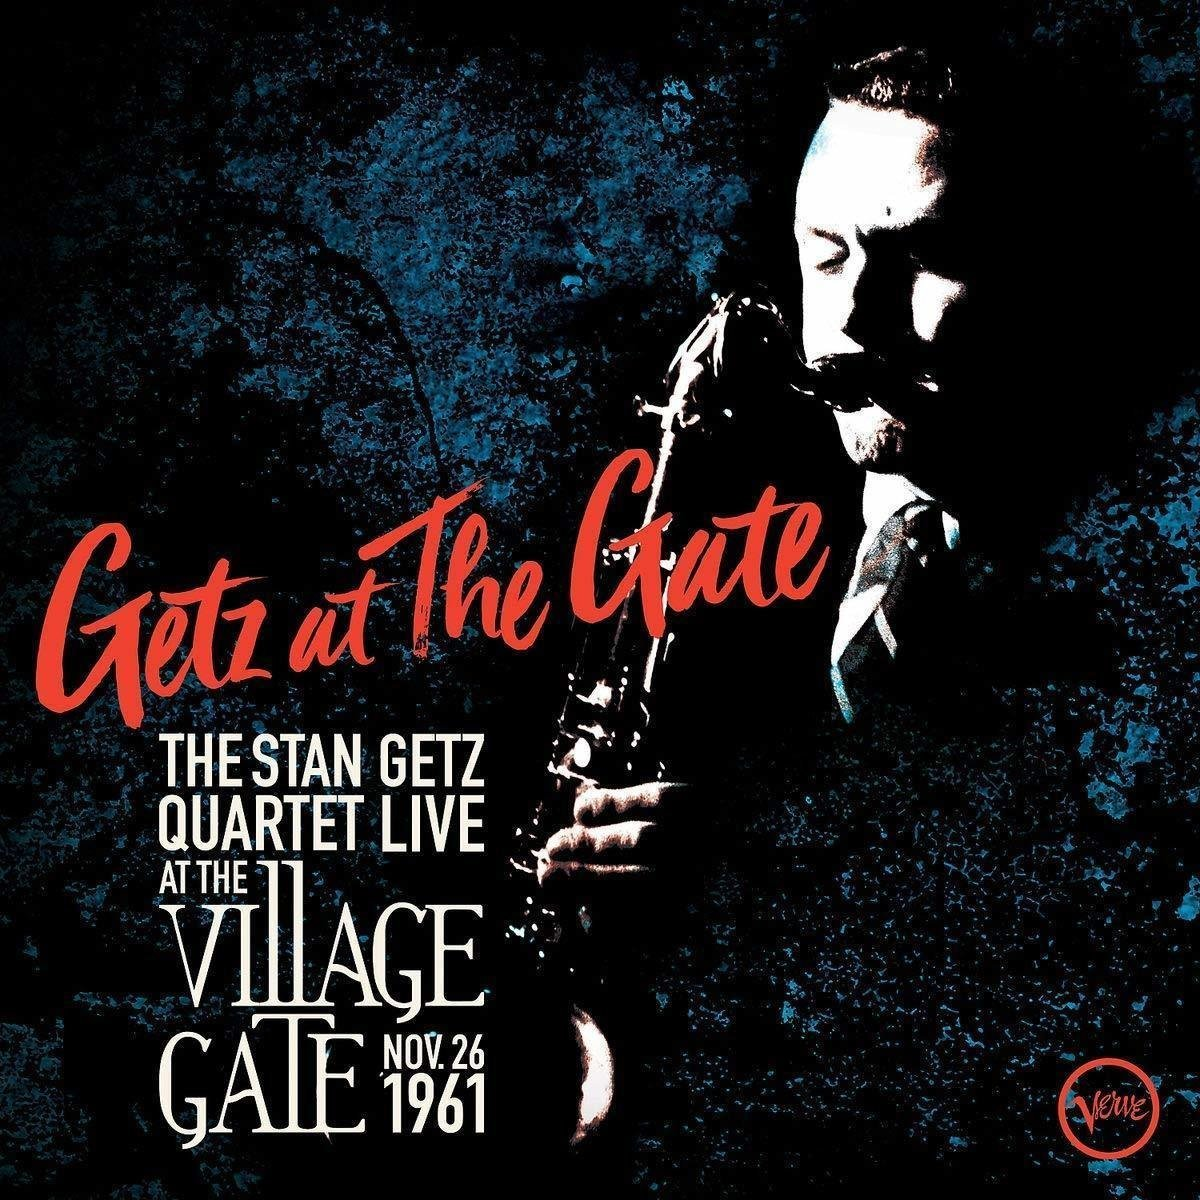 Analogue Productions Stan Getz - Getz At The Gate